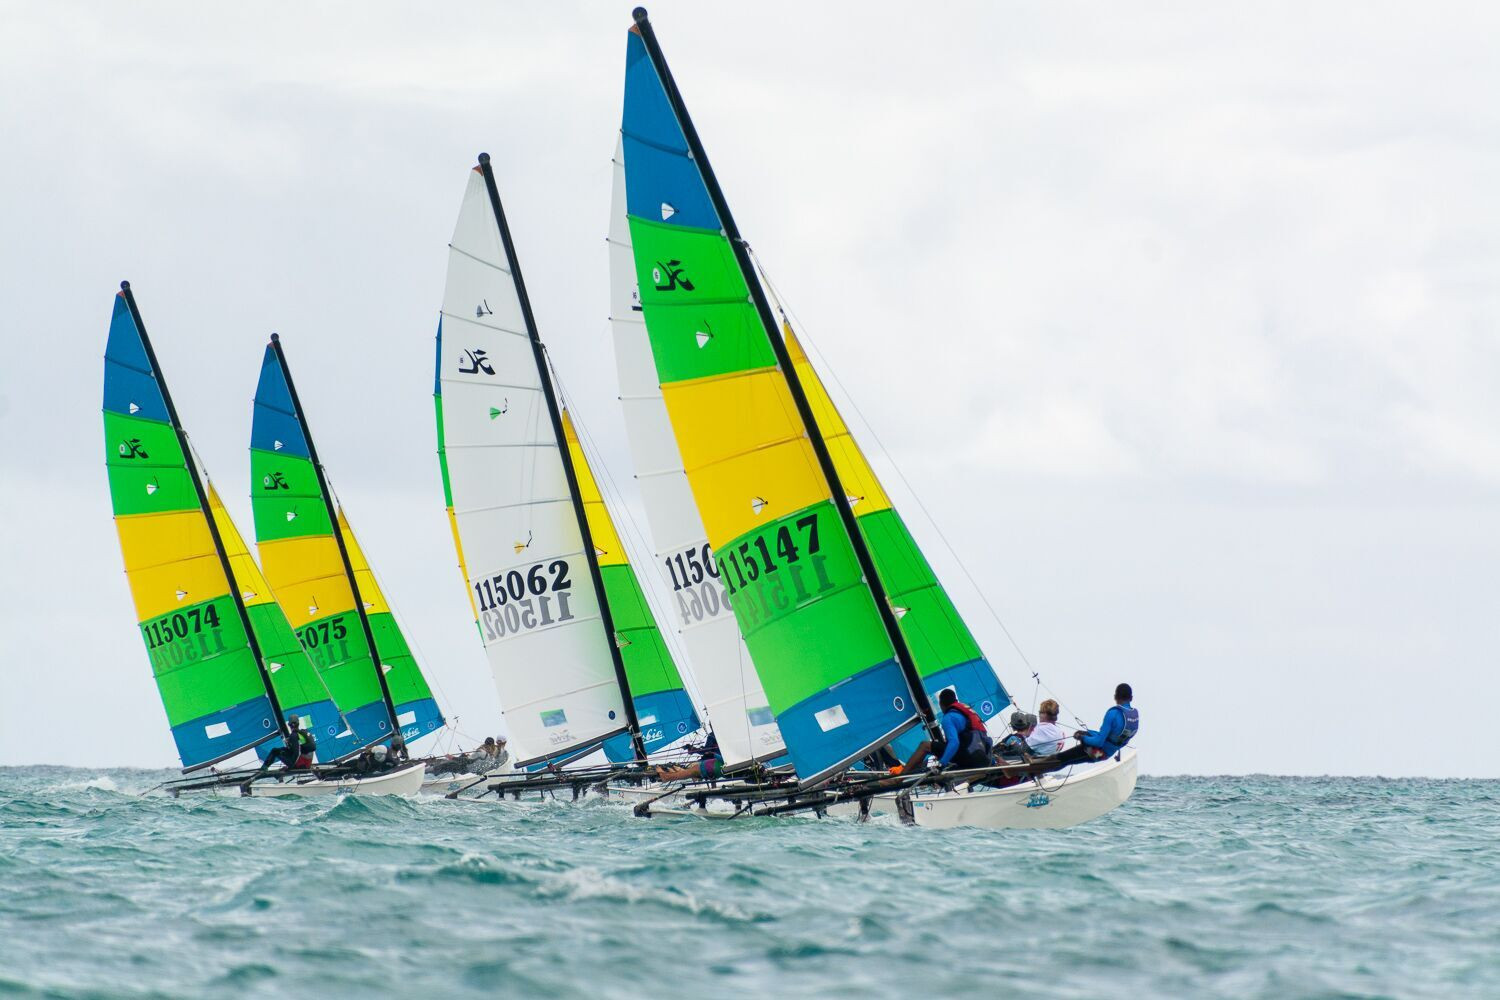 There was plenty of action on the water as sailing nears its conclusion at these Games ©Samoa 2019